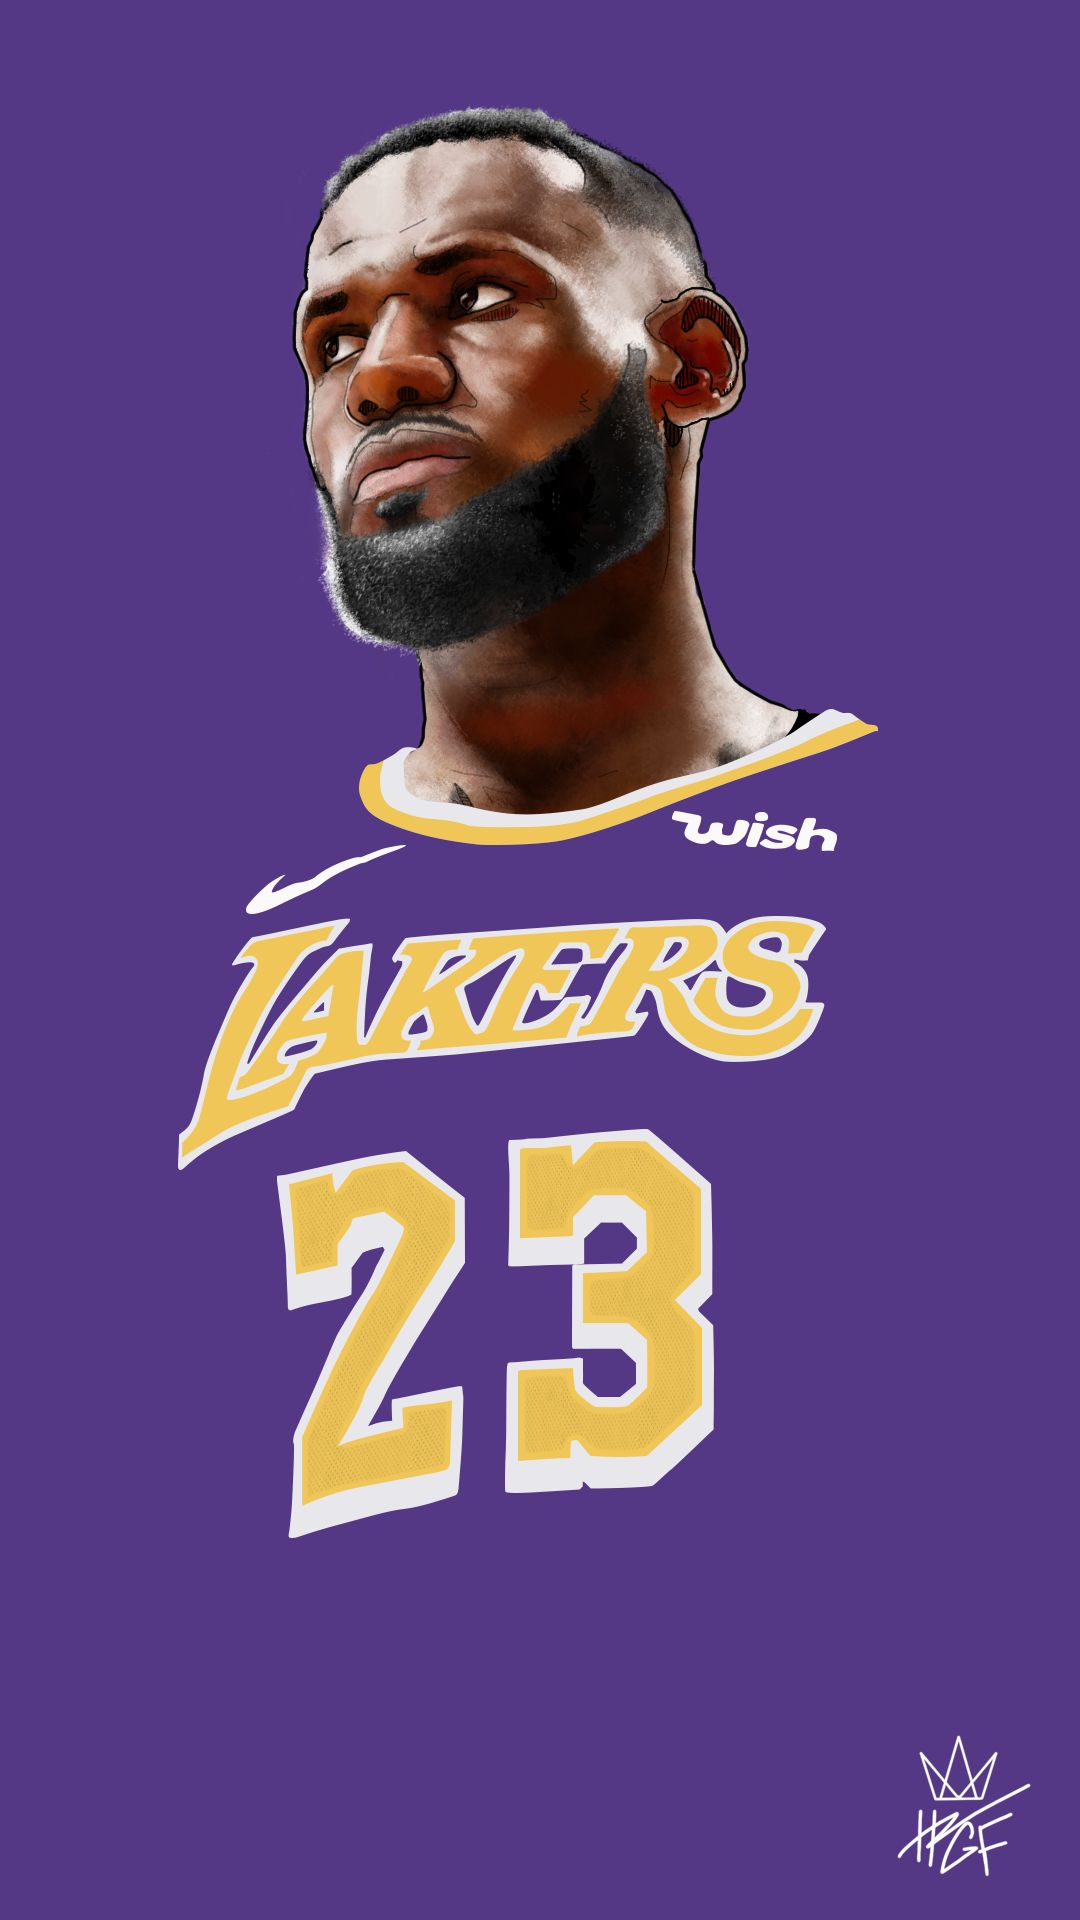 Basketball Quotes, Lebron James Wallpapers, Taekwondo, Lakers Kobe, Lebron